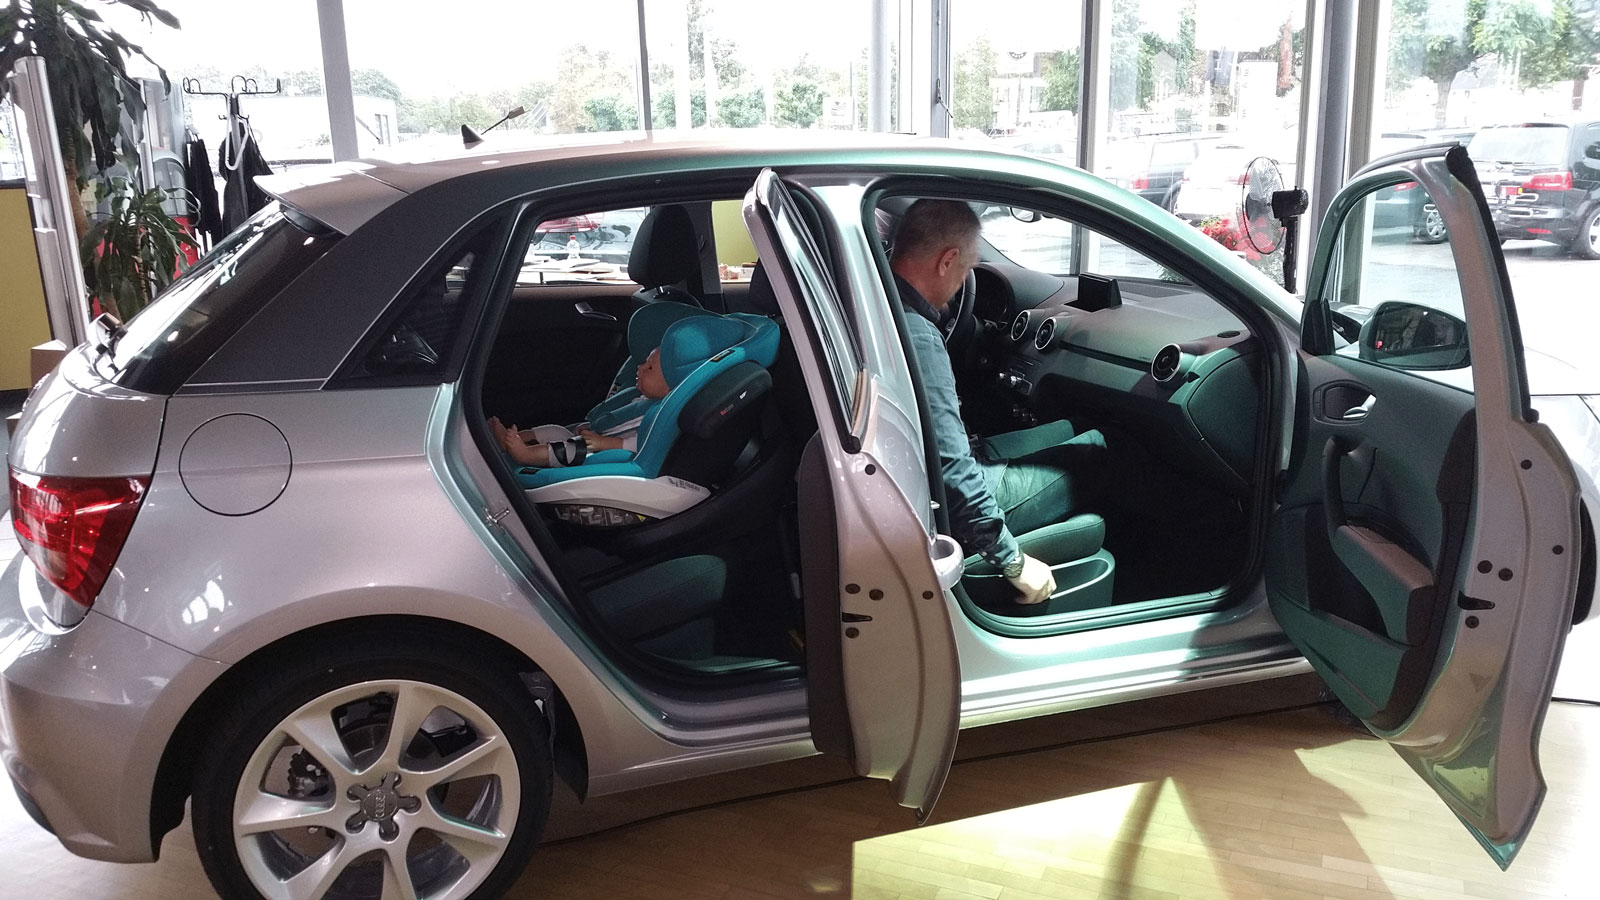 In This Gallery You Can See Some Examples Of Rear Facing Car Seats Installed The Smaller Cars On Market Like Volkswagen Polo Audi A1